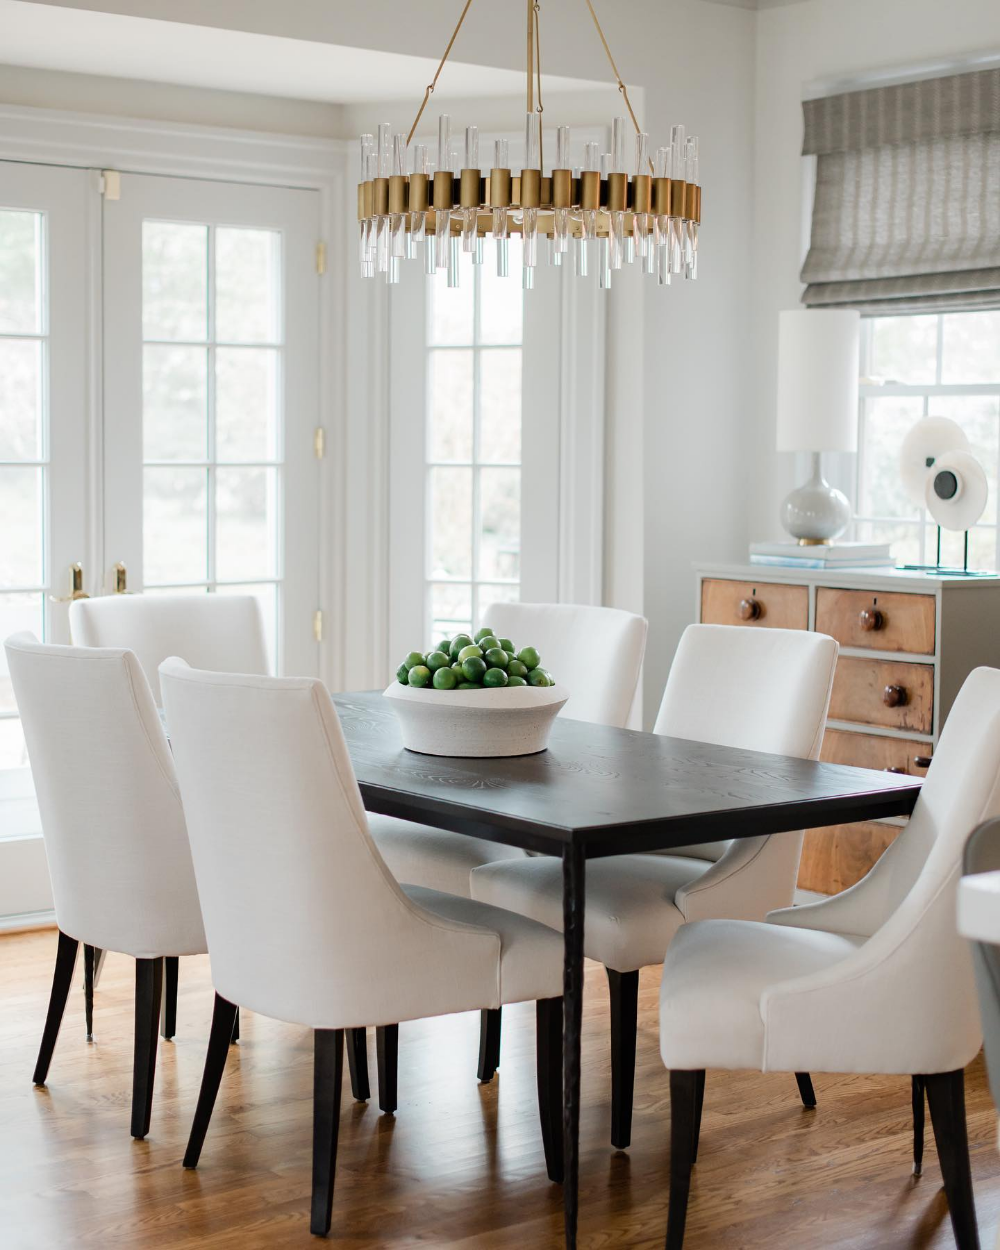 Acrylic Chandelier Elevates Transitional Dining Room Transitional Dining Room Dining Room Makeover Dining